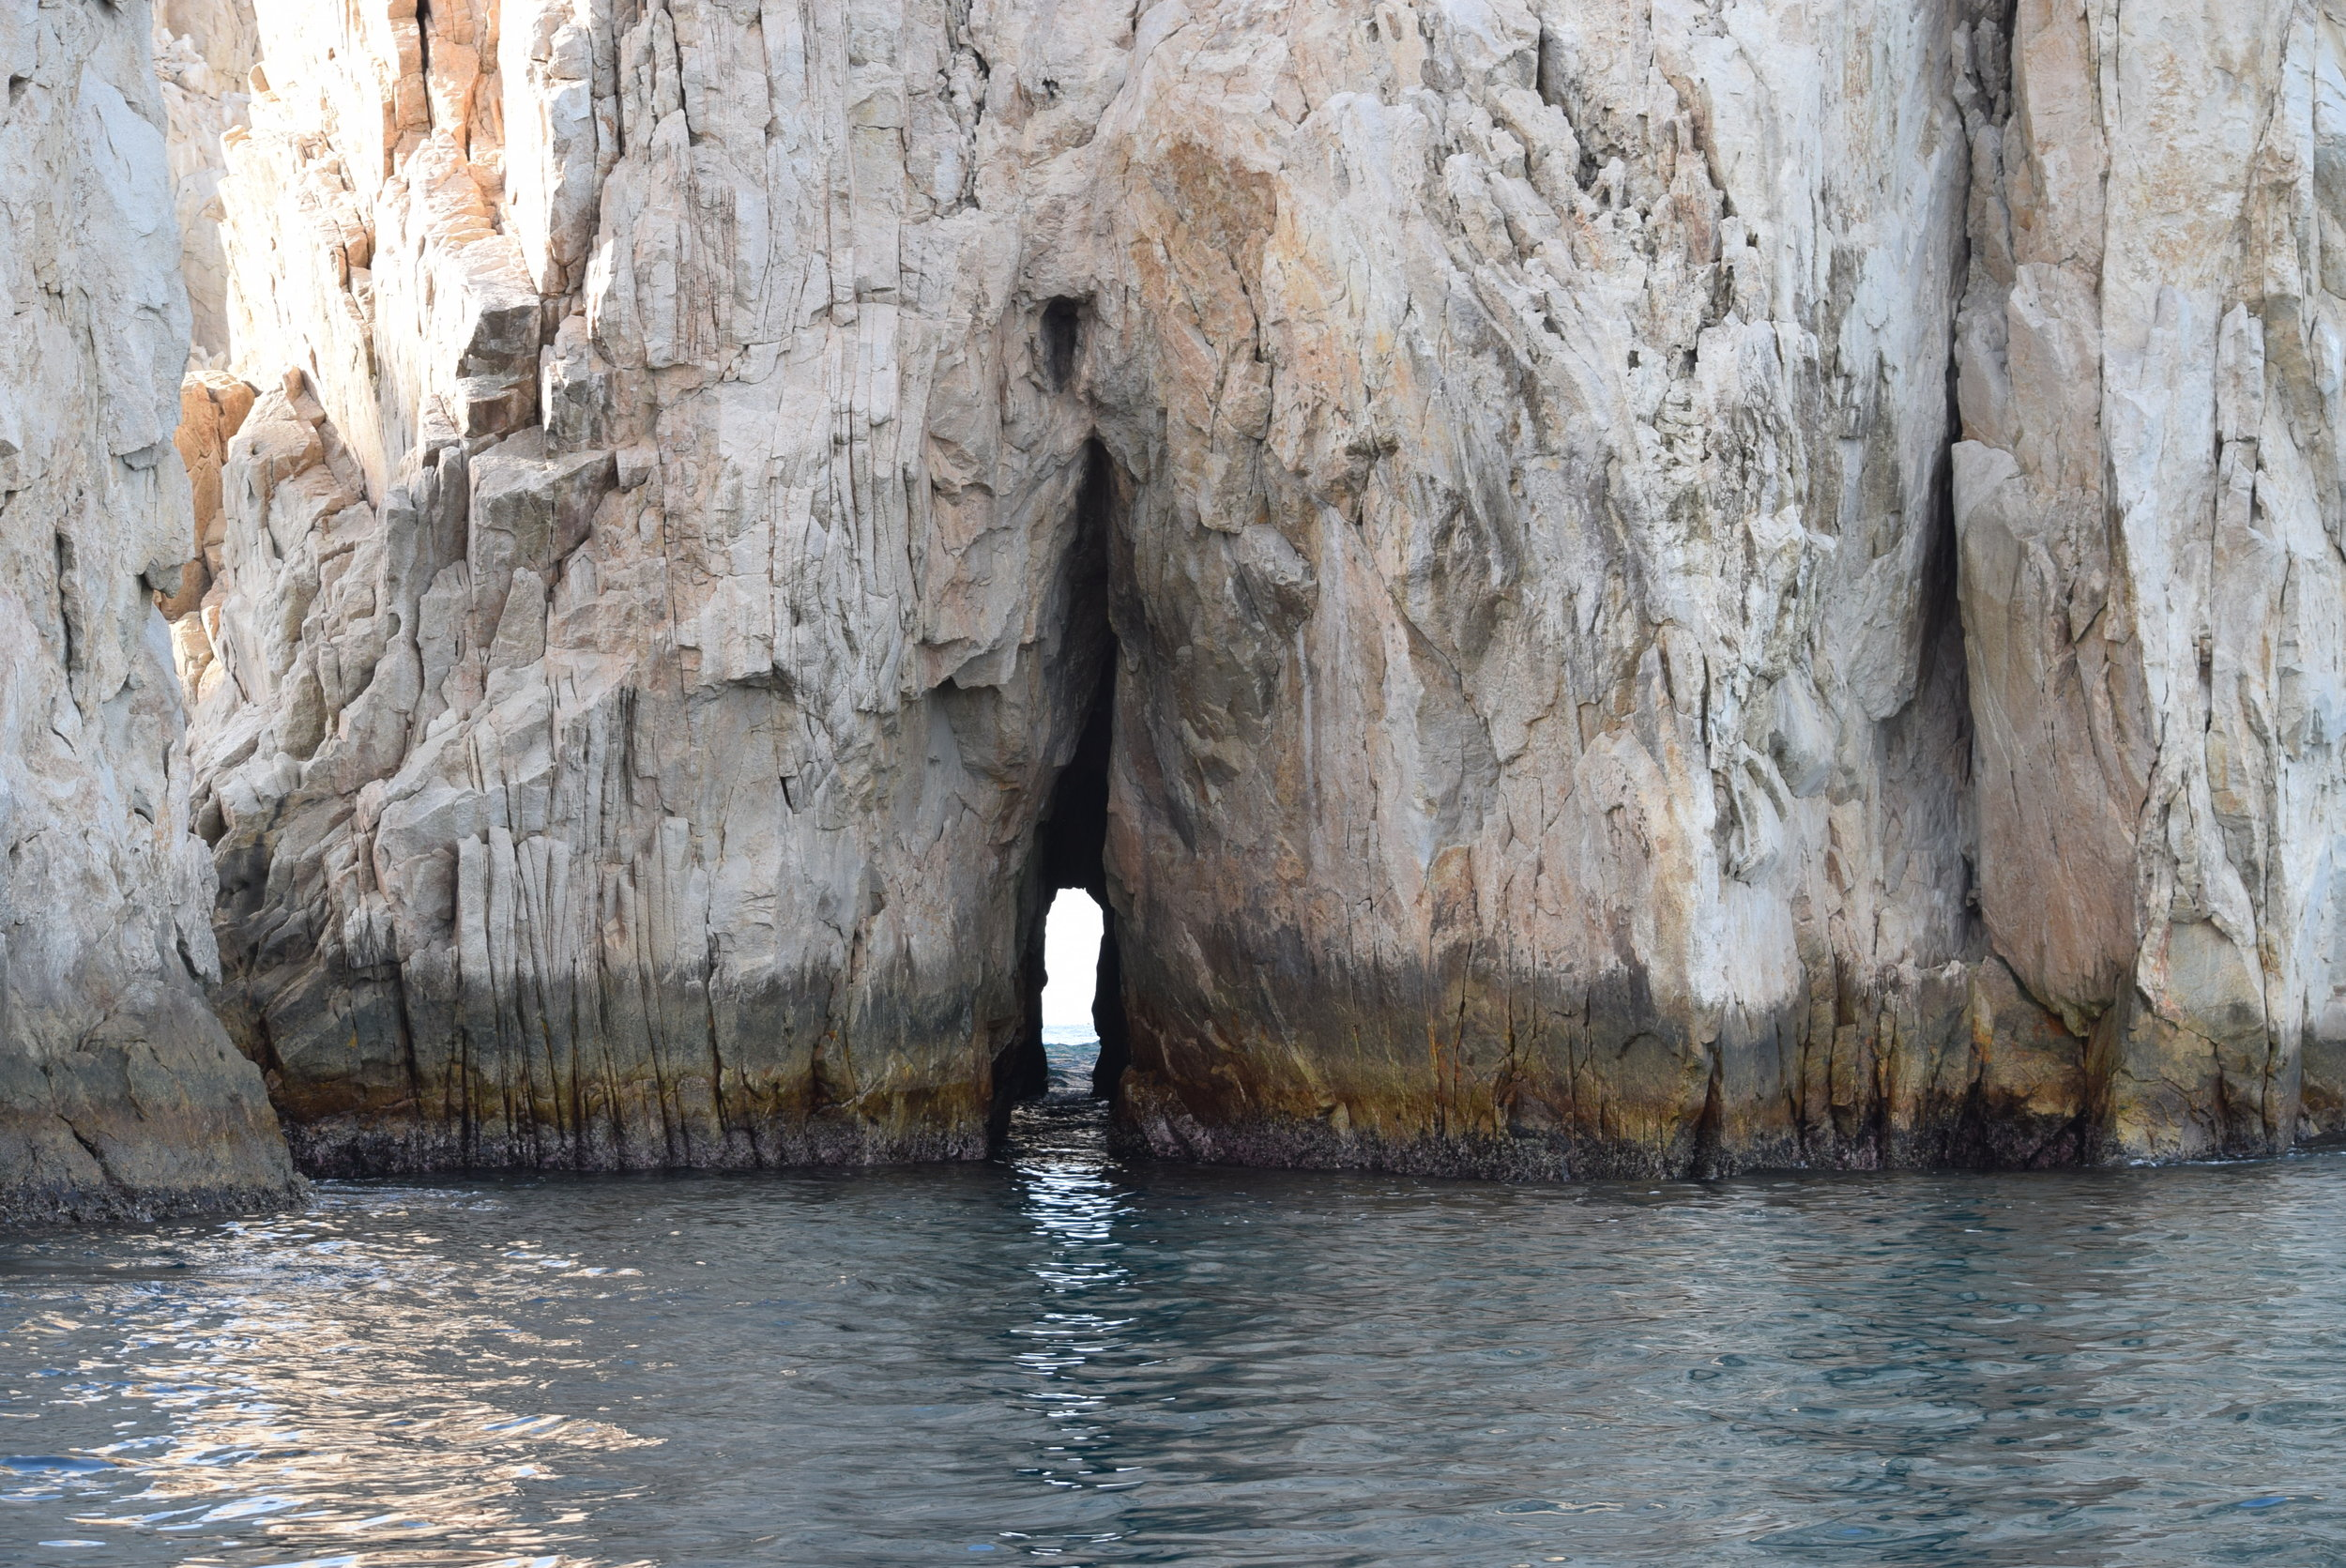 The magnificent rocks of Cabo where the Sea of Cortez meets the Pacific Ocean